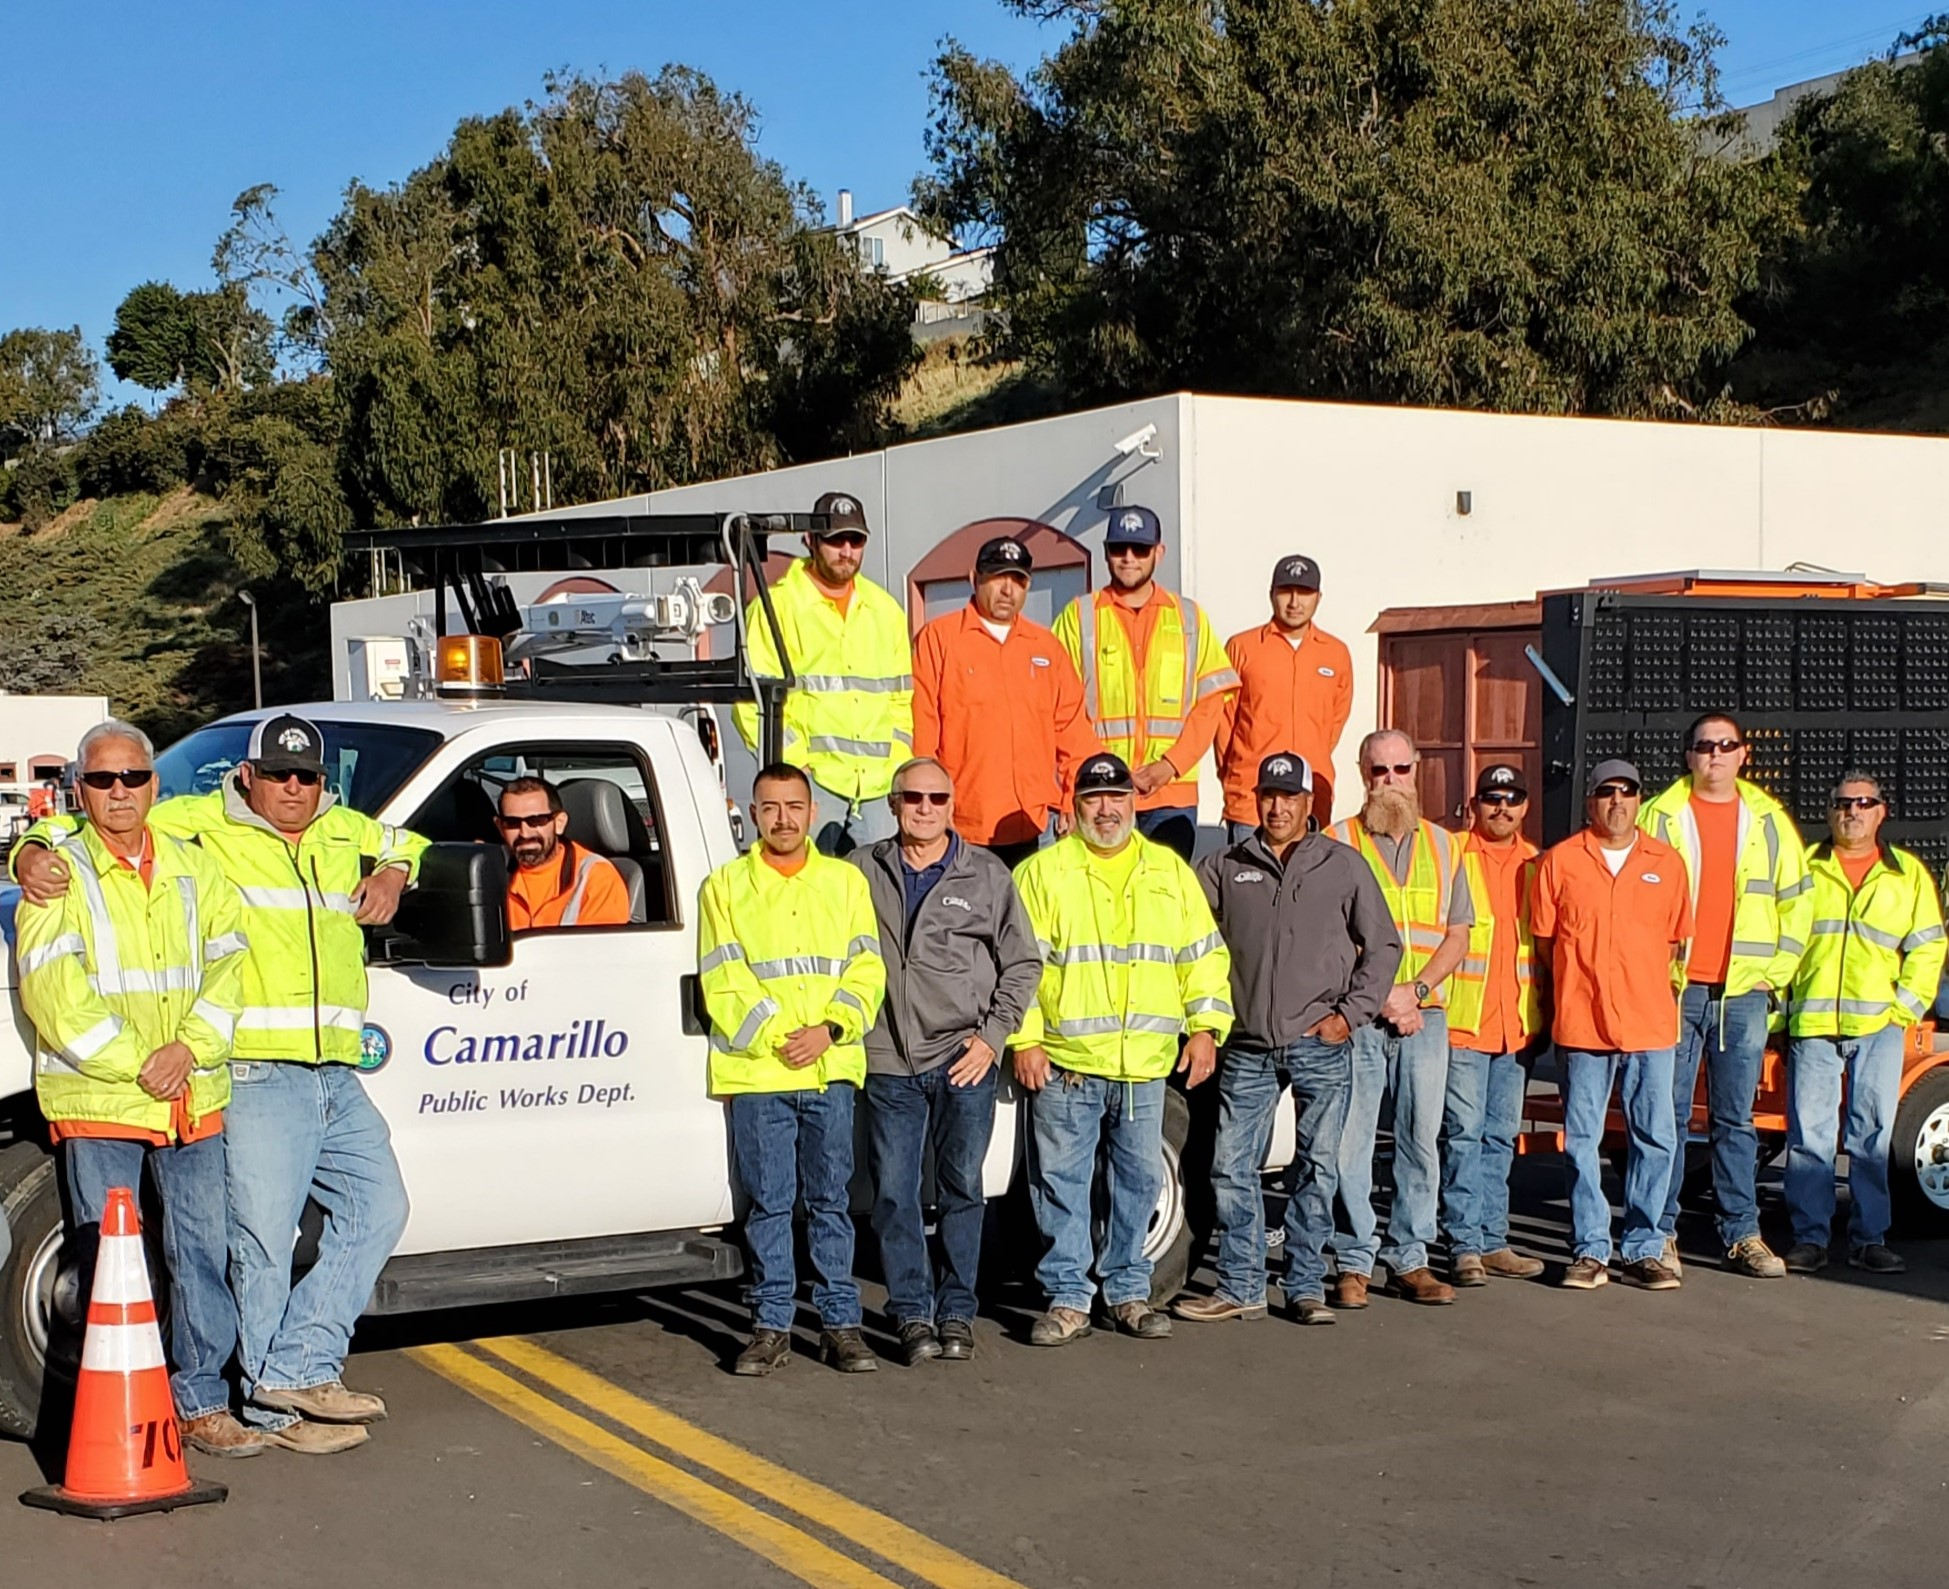 Public Works Employees Standing in front of City Truck